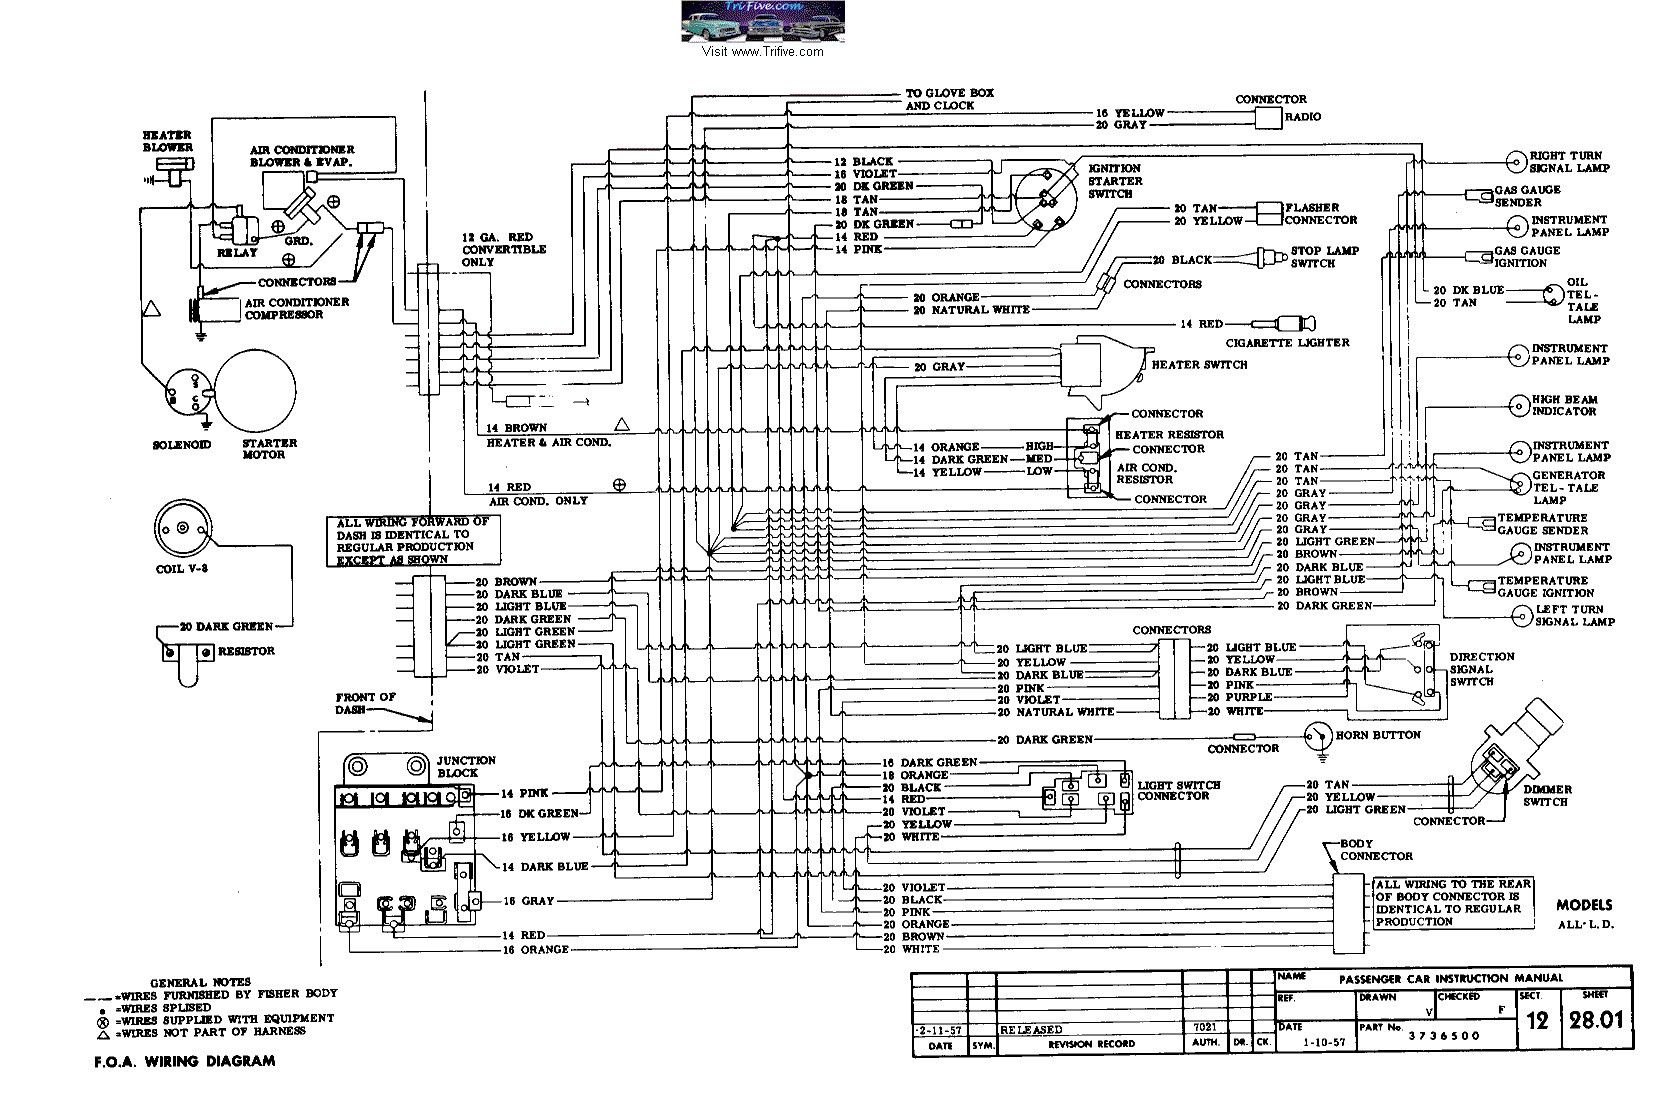 1955 chevy turn signal wiring diagram Download-1957 chevy truck heater wiring diagram also with 1955 chevy wiring rh casiaroc co 55 Chevy 10-o